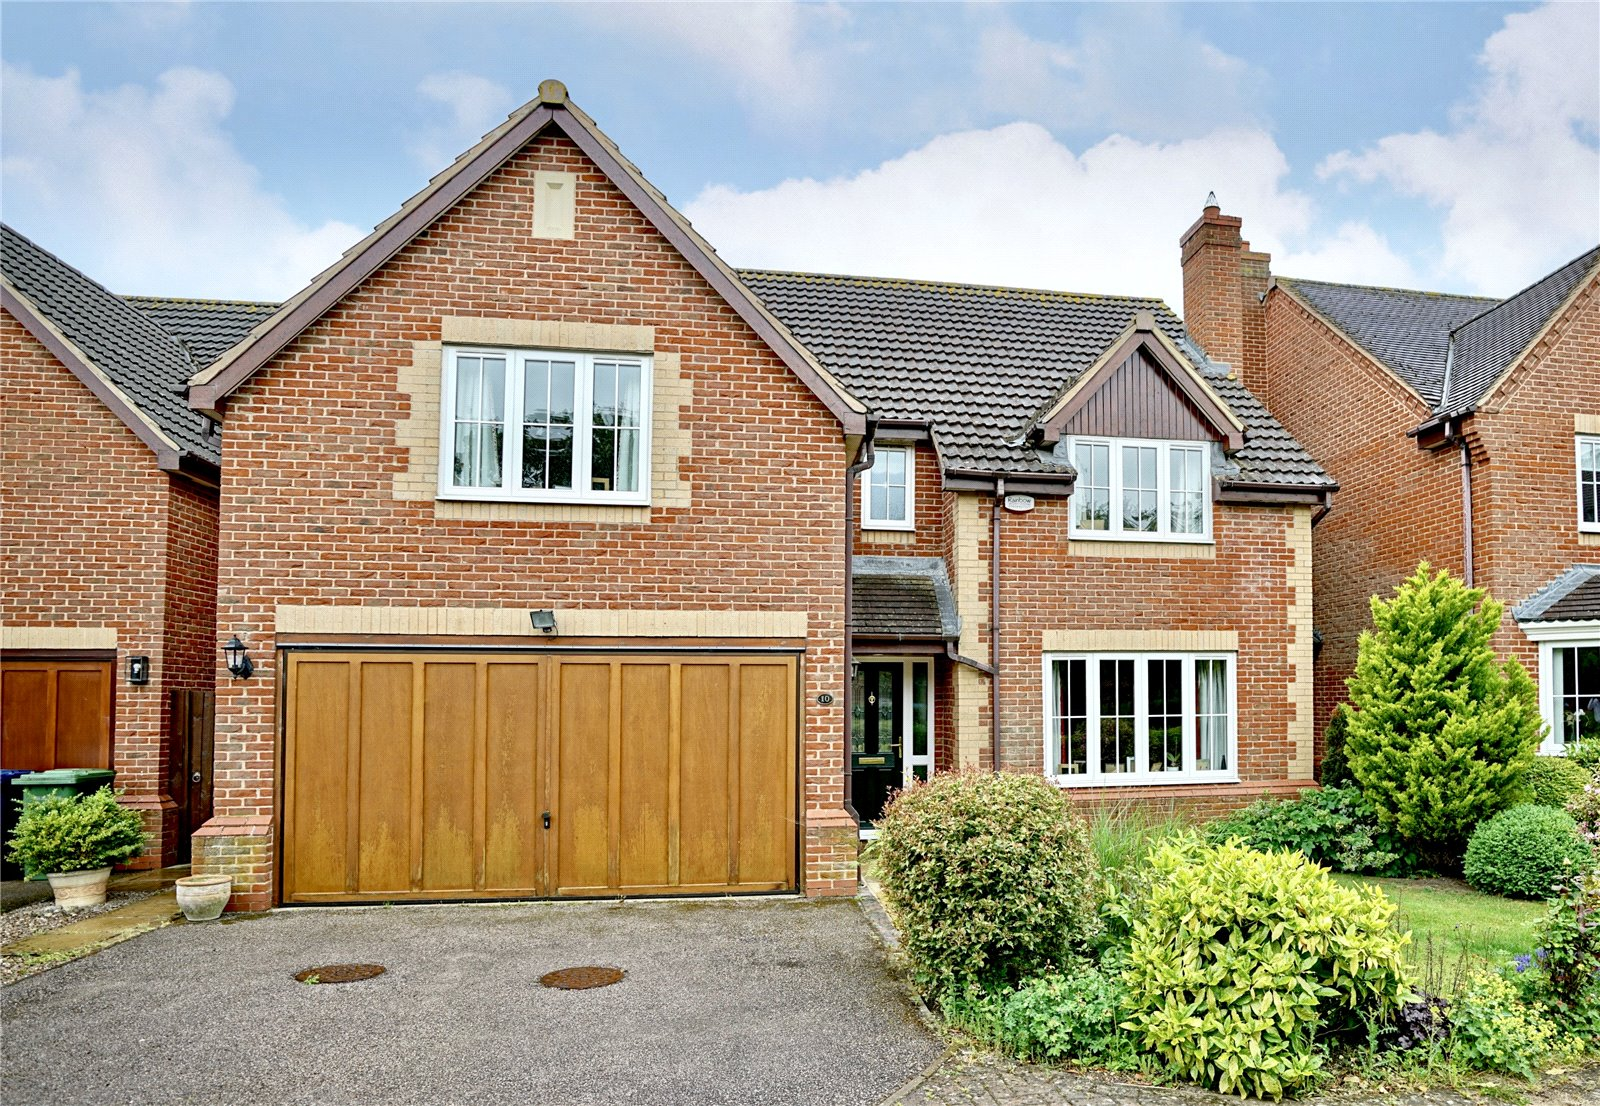 4 bed house for sale in Great Gransden  - Property Image 3